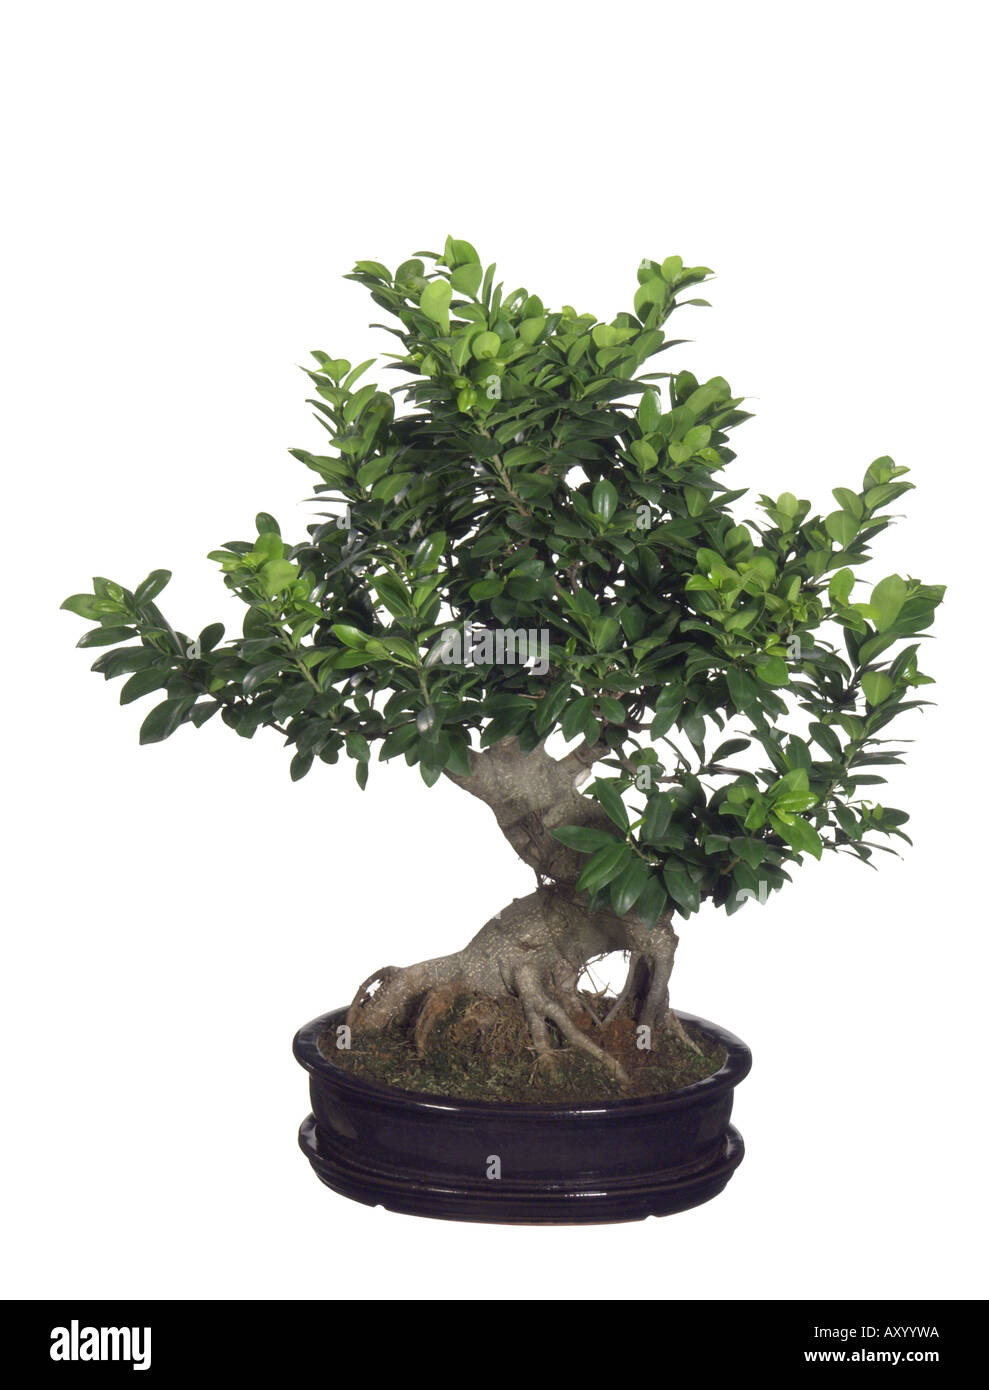 laurel fig ficus retusa ficus ginseng bonsai stock. Black Bedroom Furniture Sets. Home Design Ideas